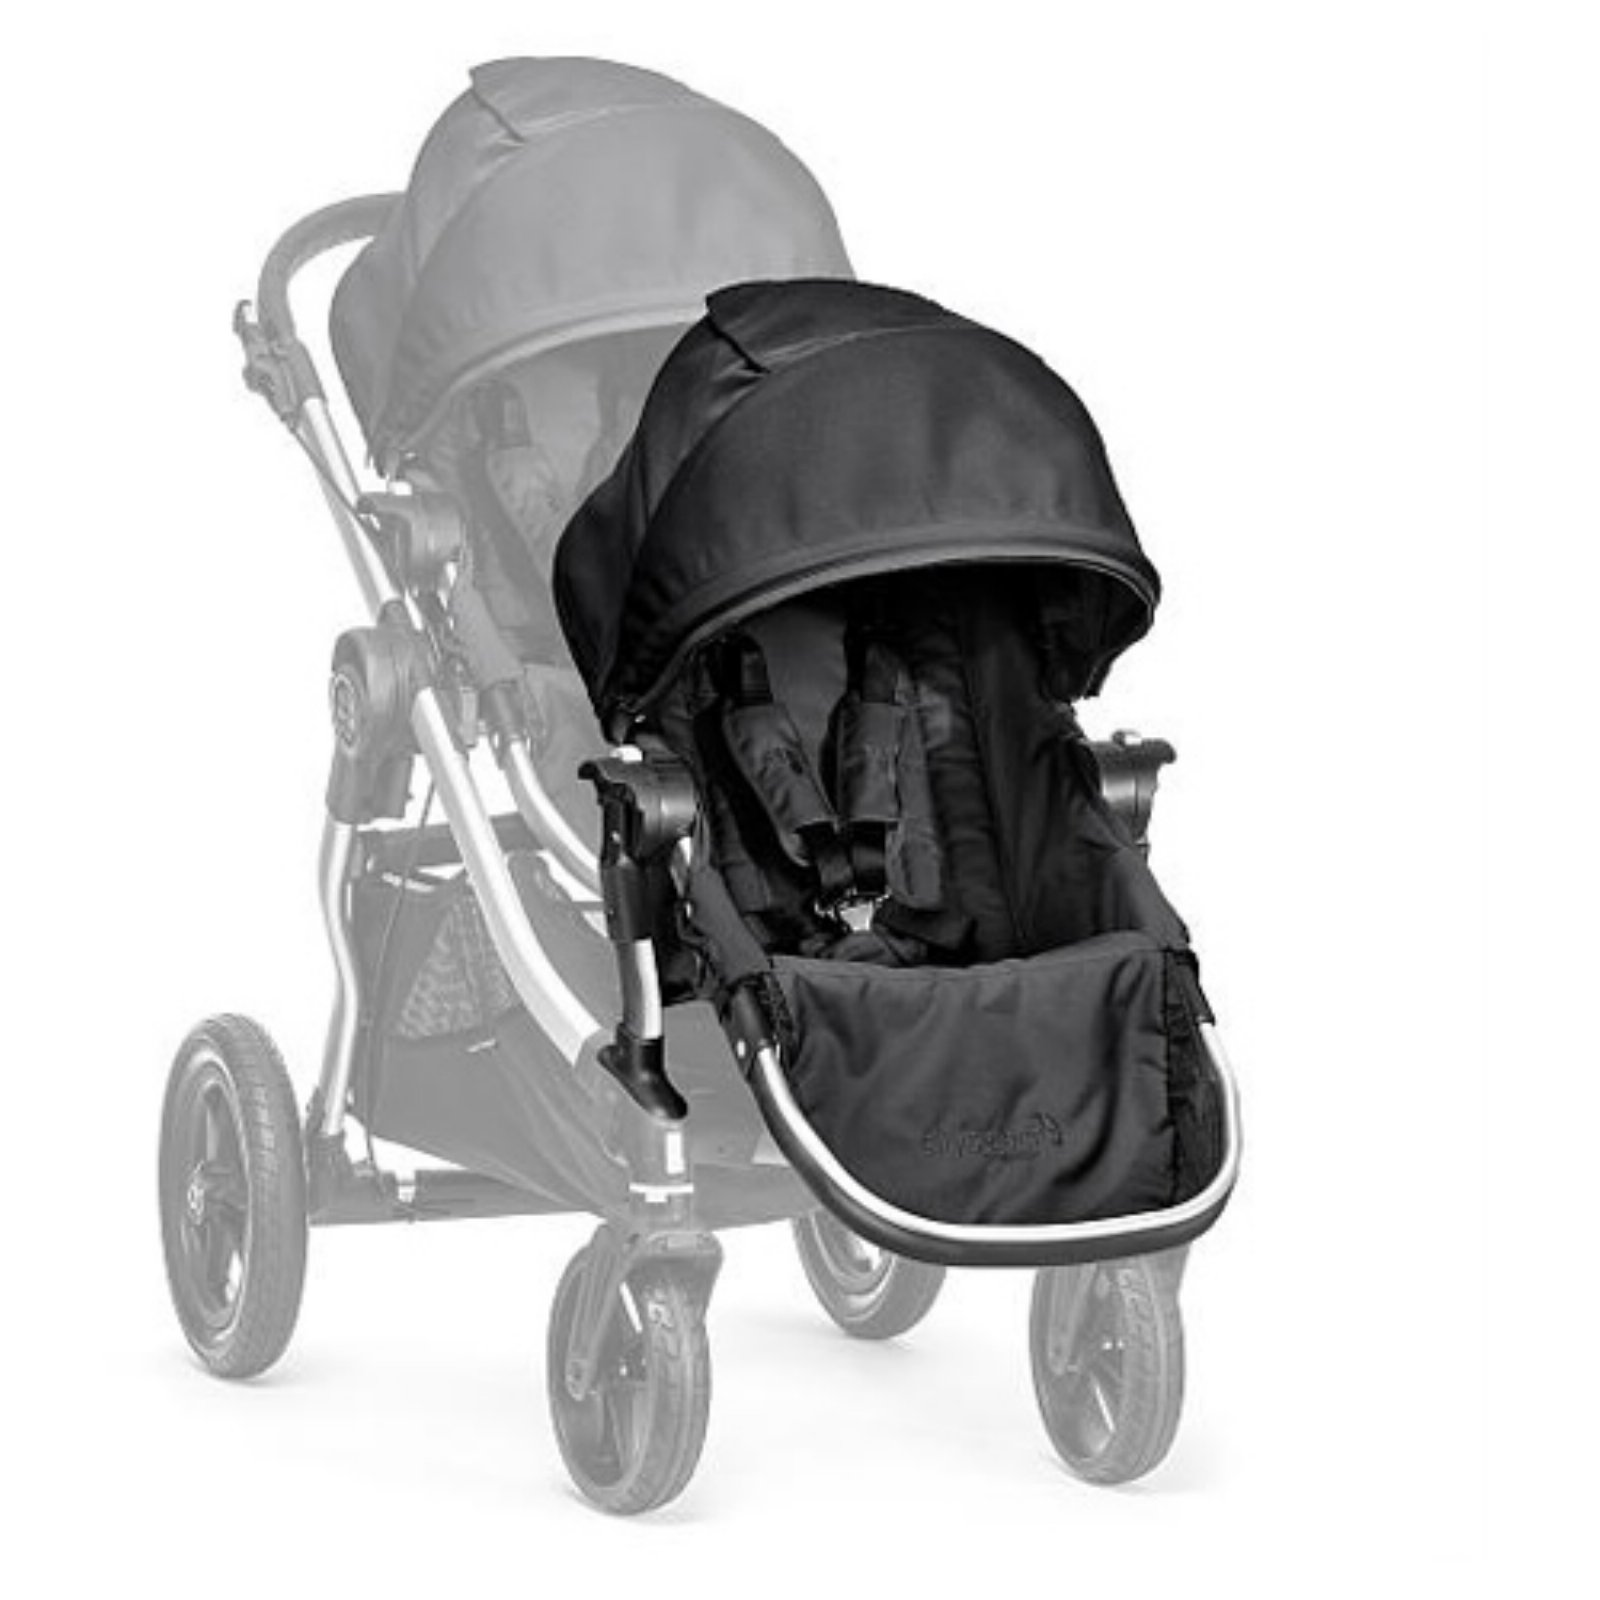 Baby Jogger City Select Second Seat Stroller Kit Onyx